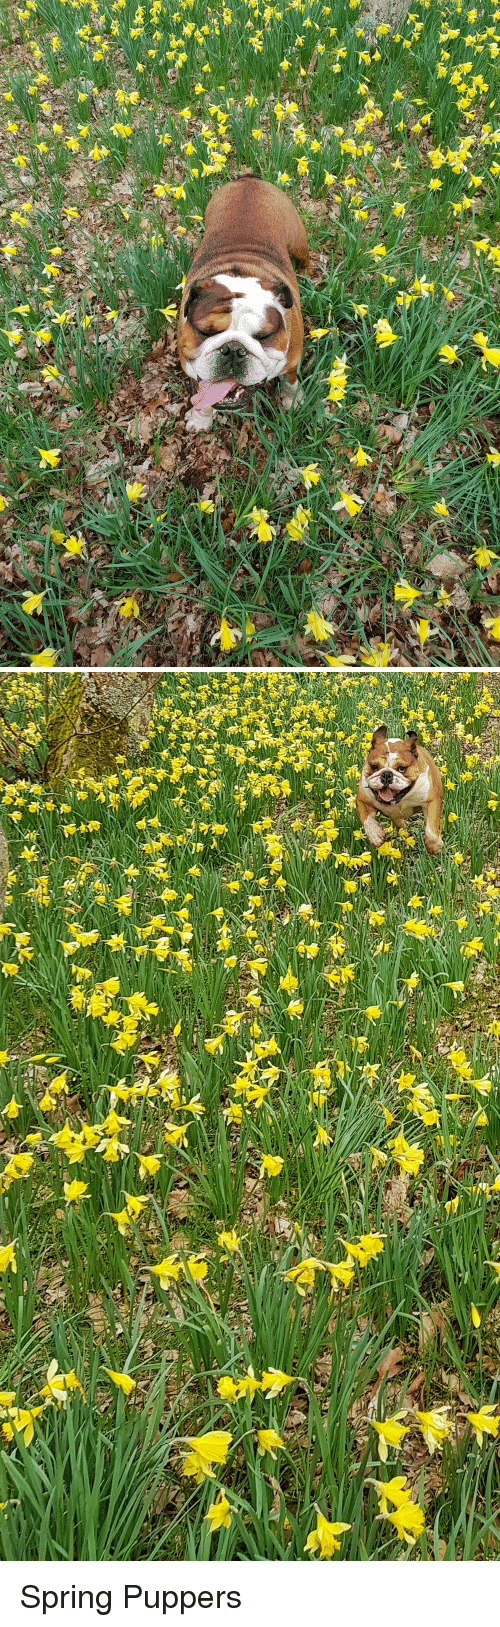 Spring and Puppers: Spring Puppers